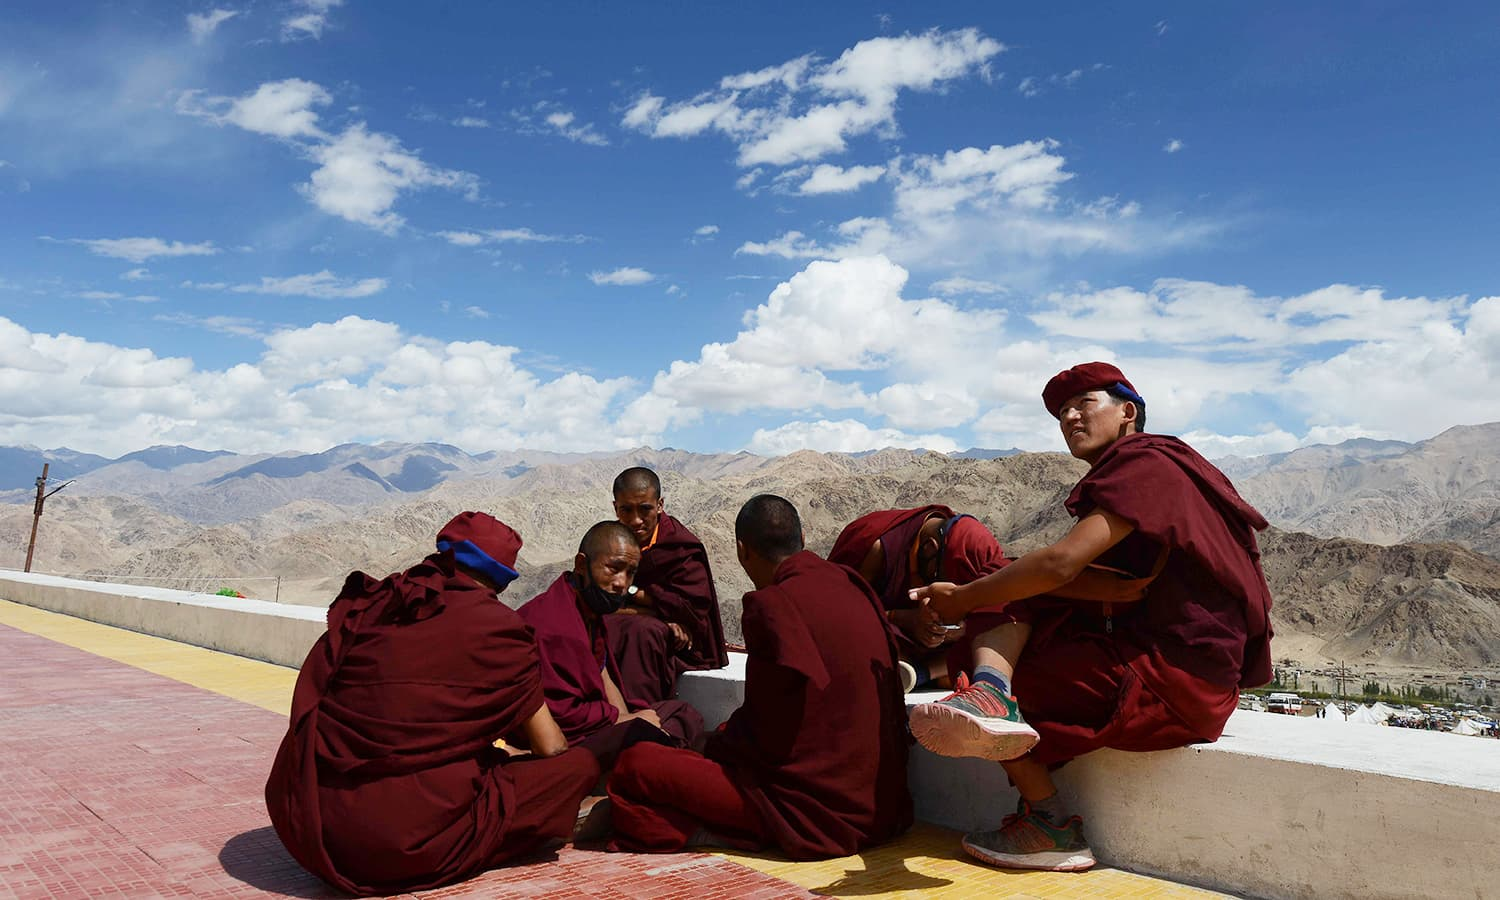 Buddhist monks gathered at the Naro palace during the Naropa festival. — AFP